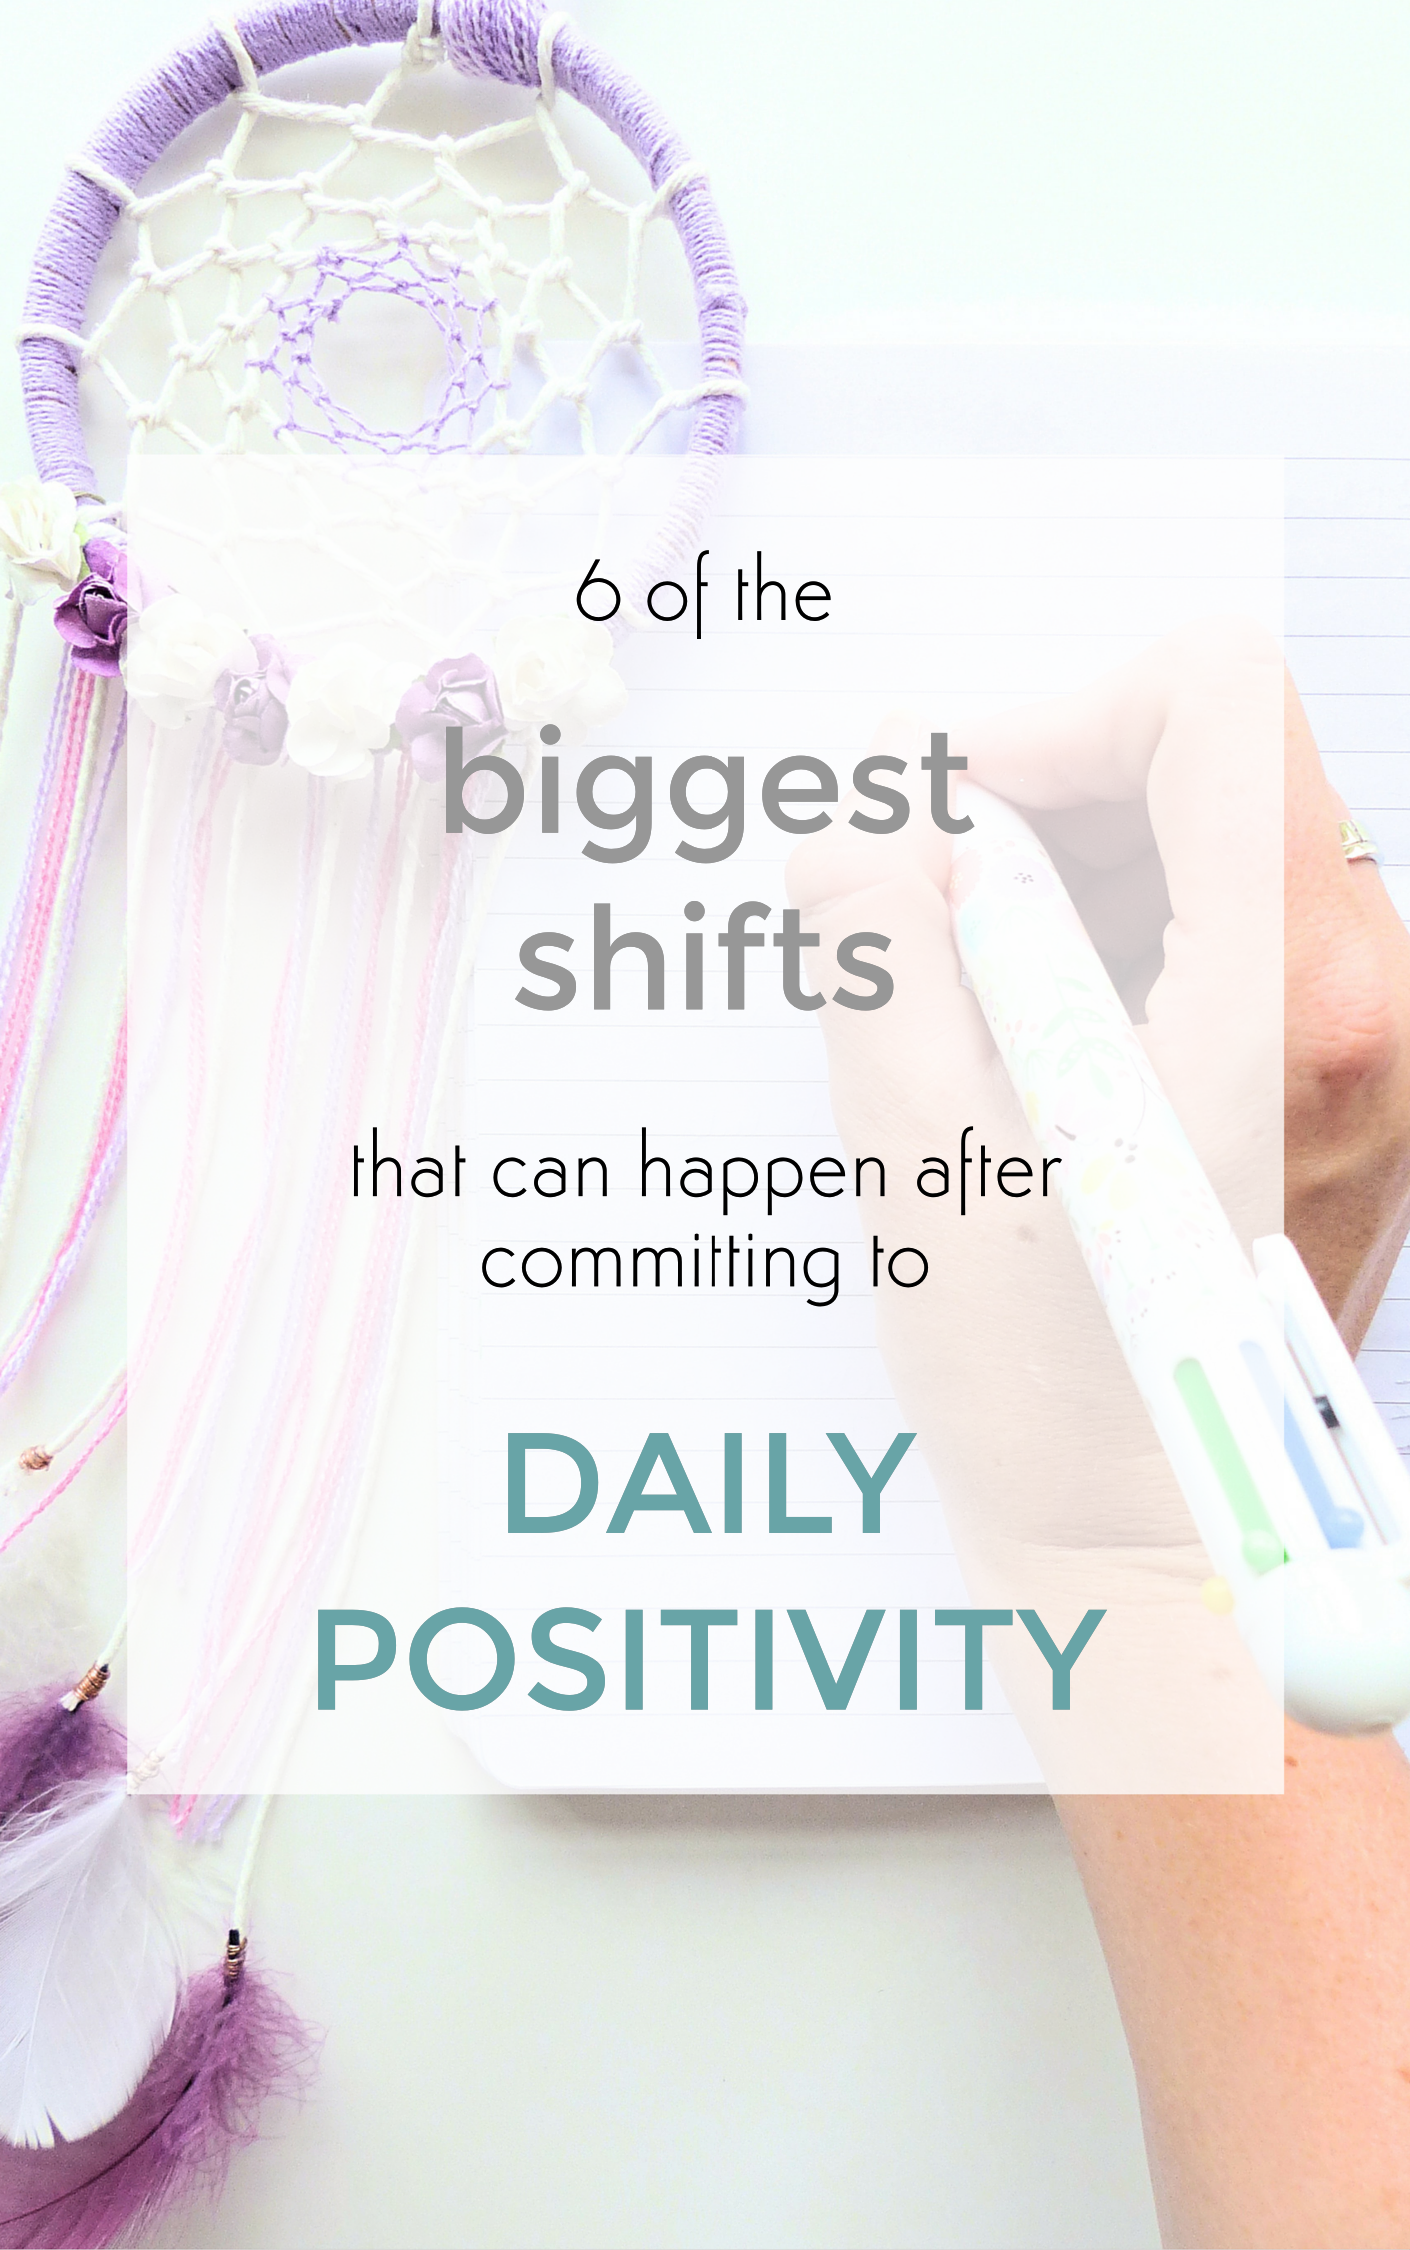 6 of the biggest shifts that can happen after committing to daily positivity